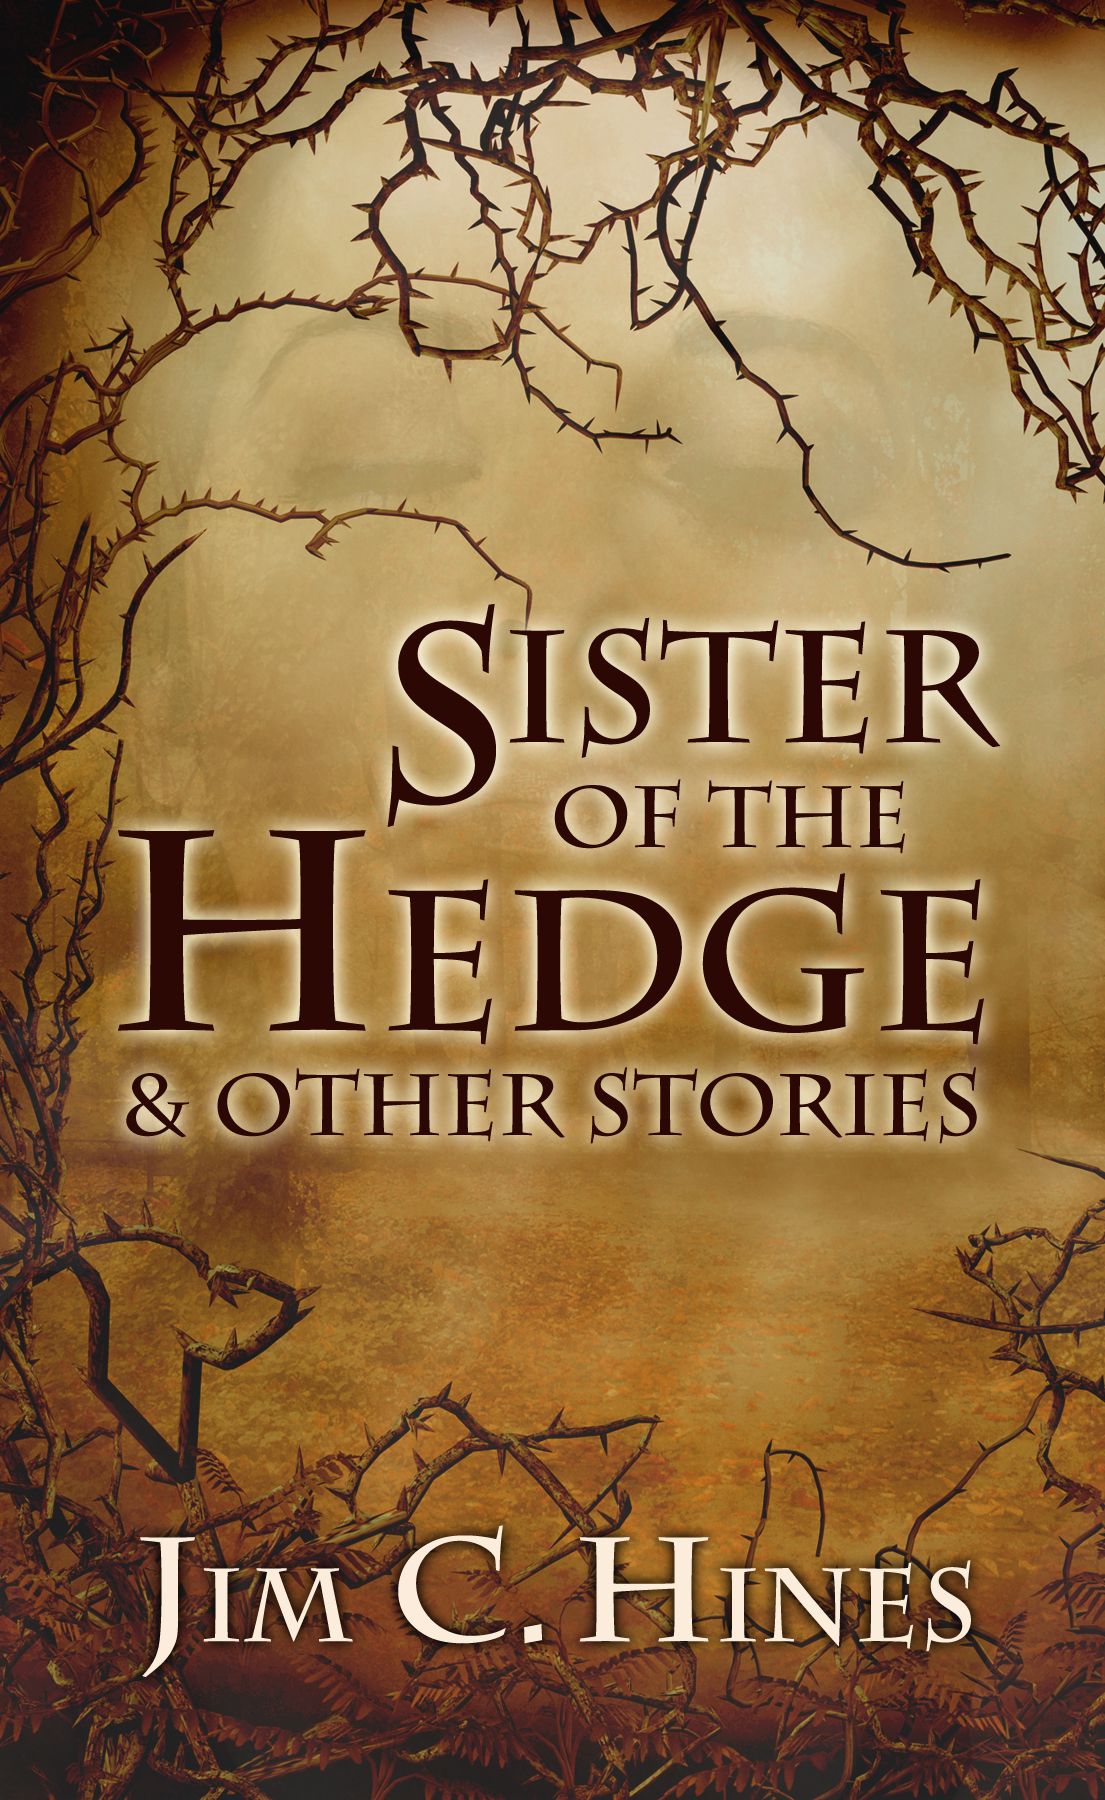 Sister of the Hedge